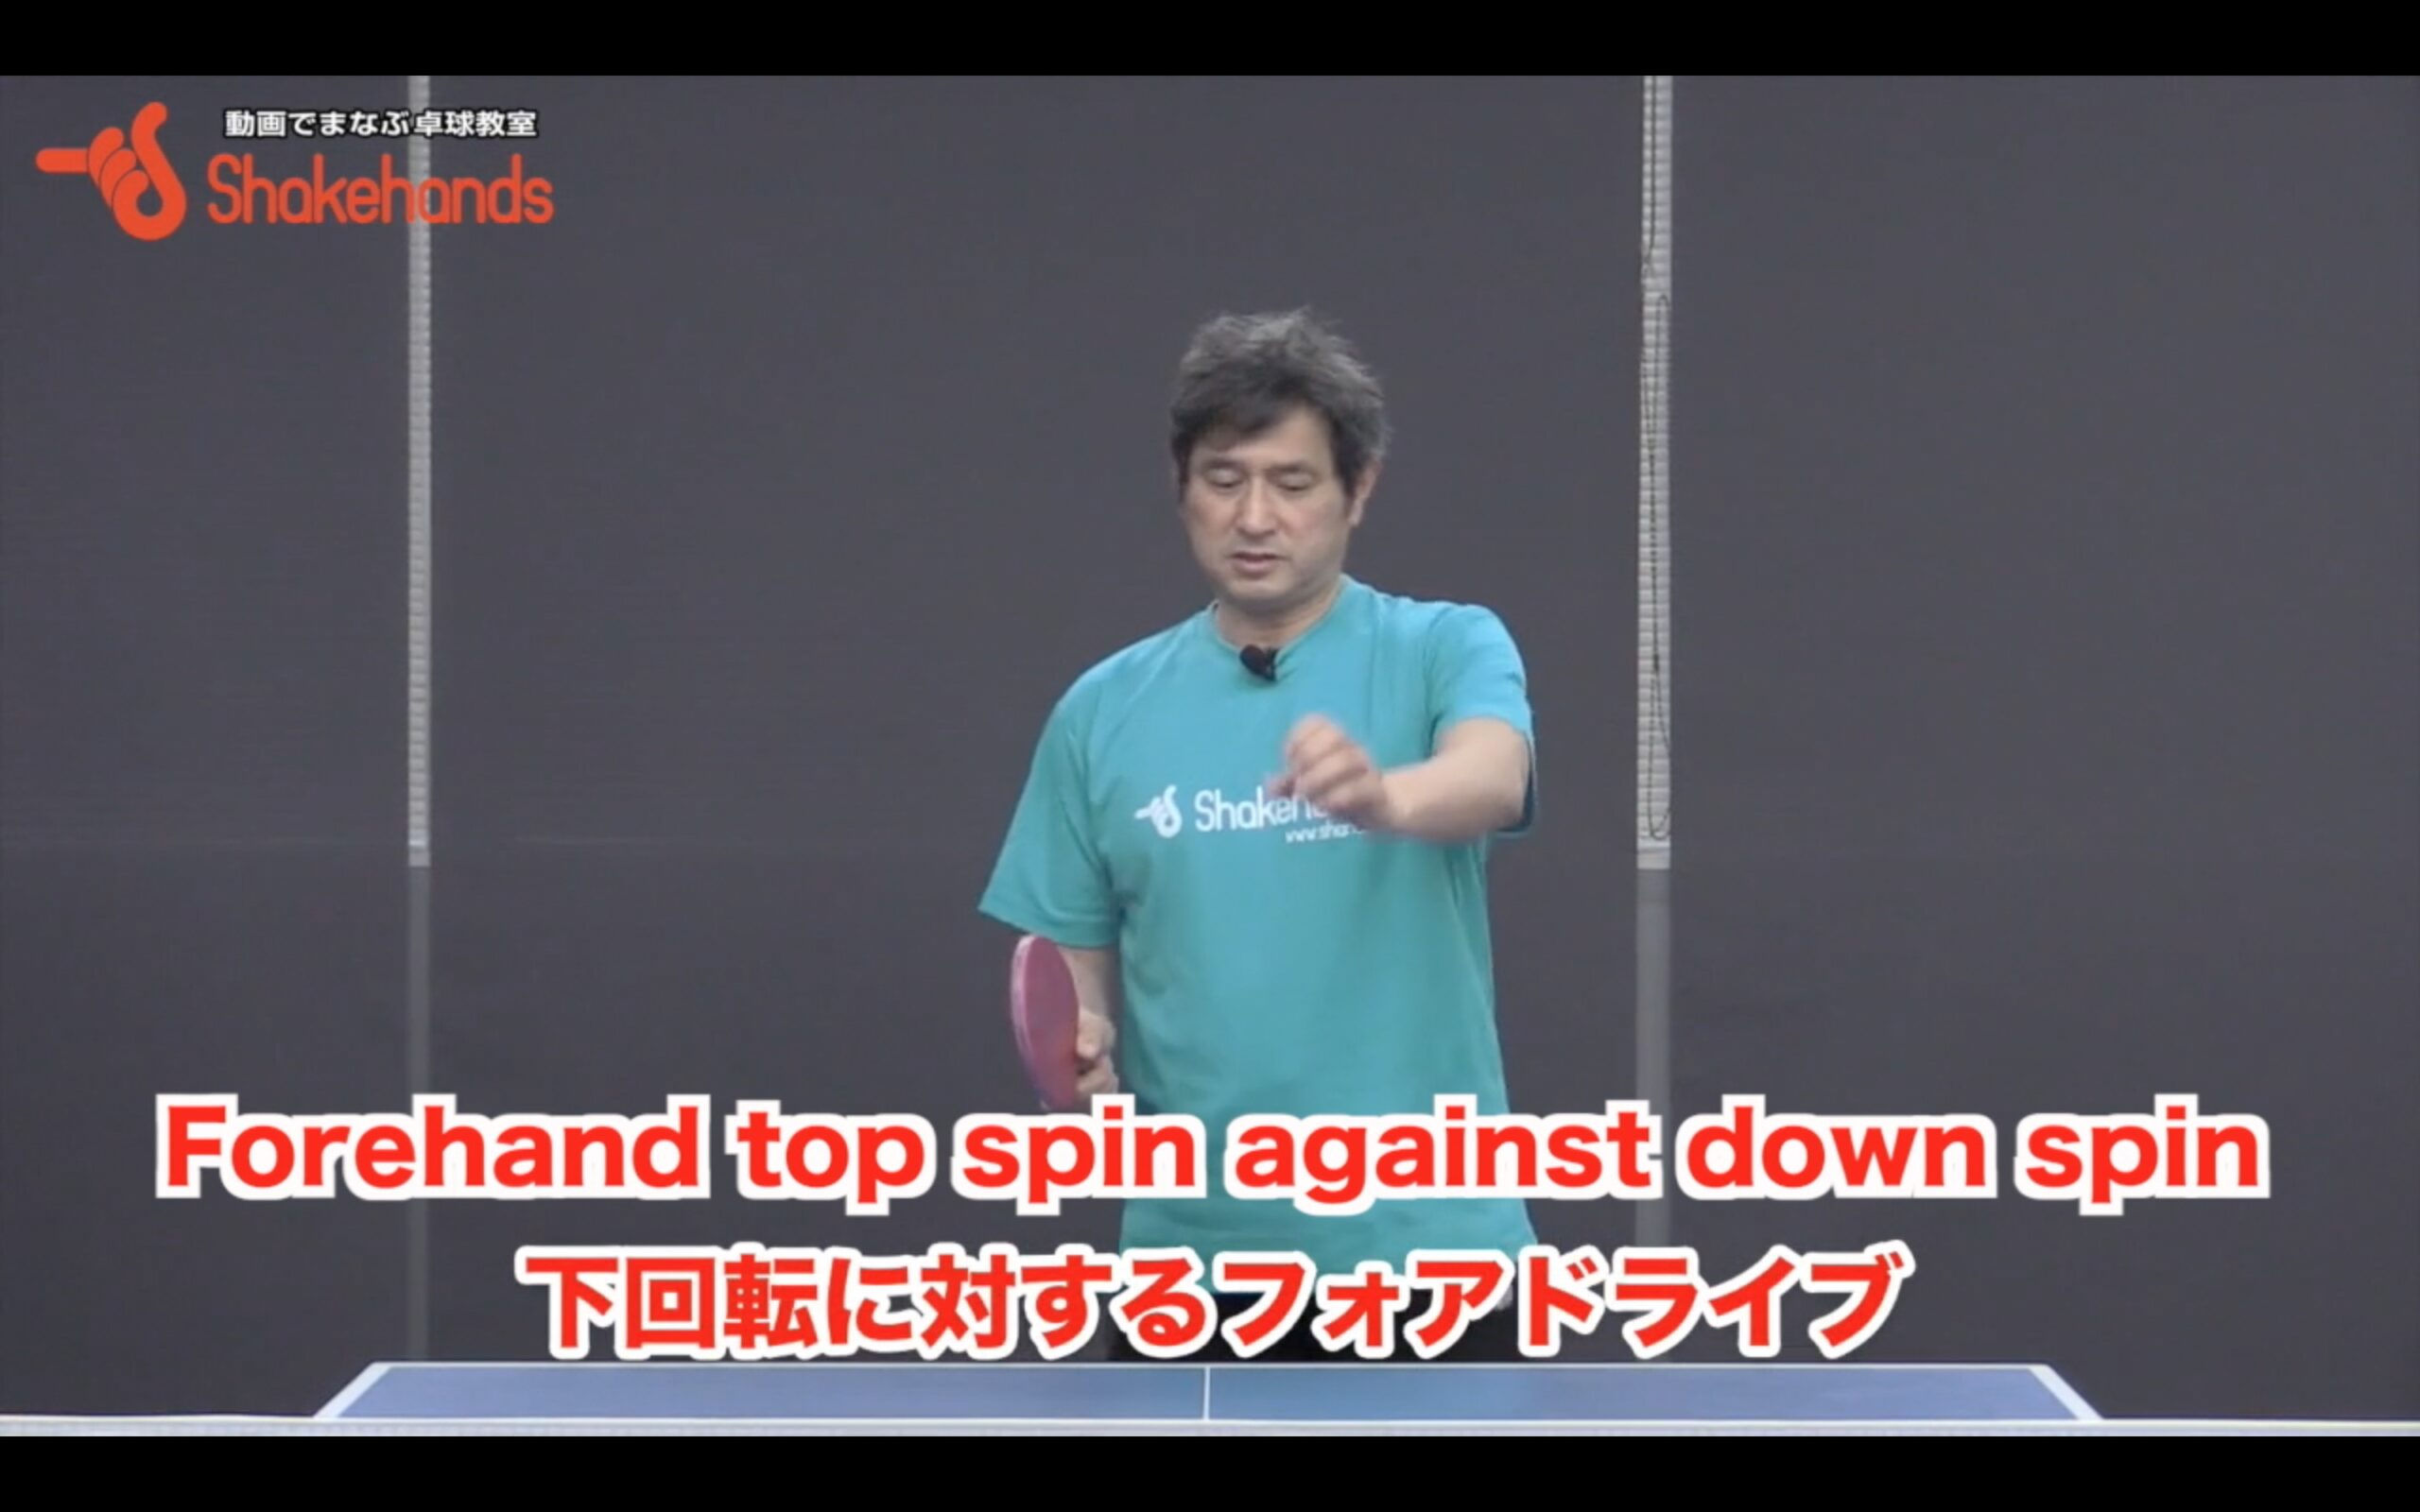 Forehand top spin against down spin